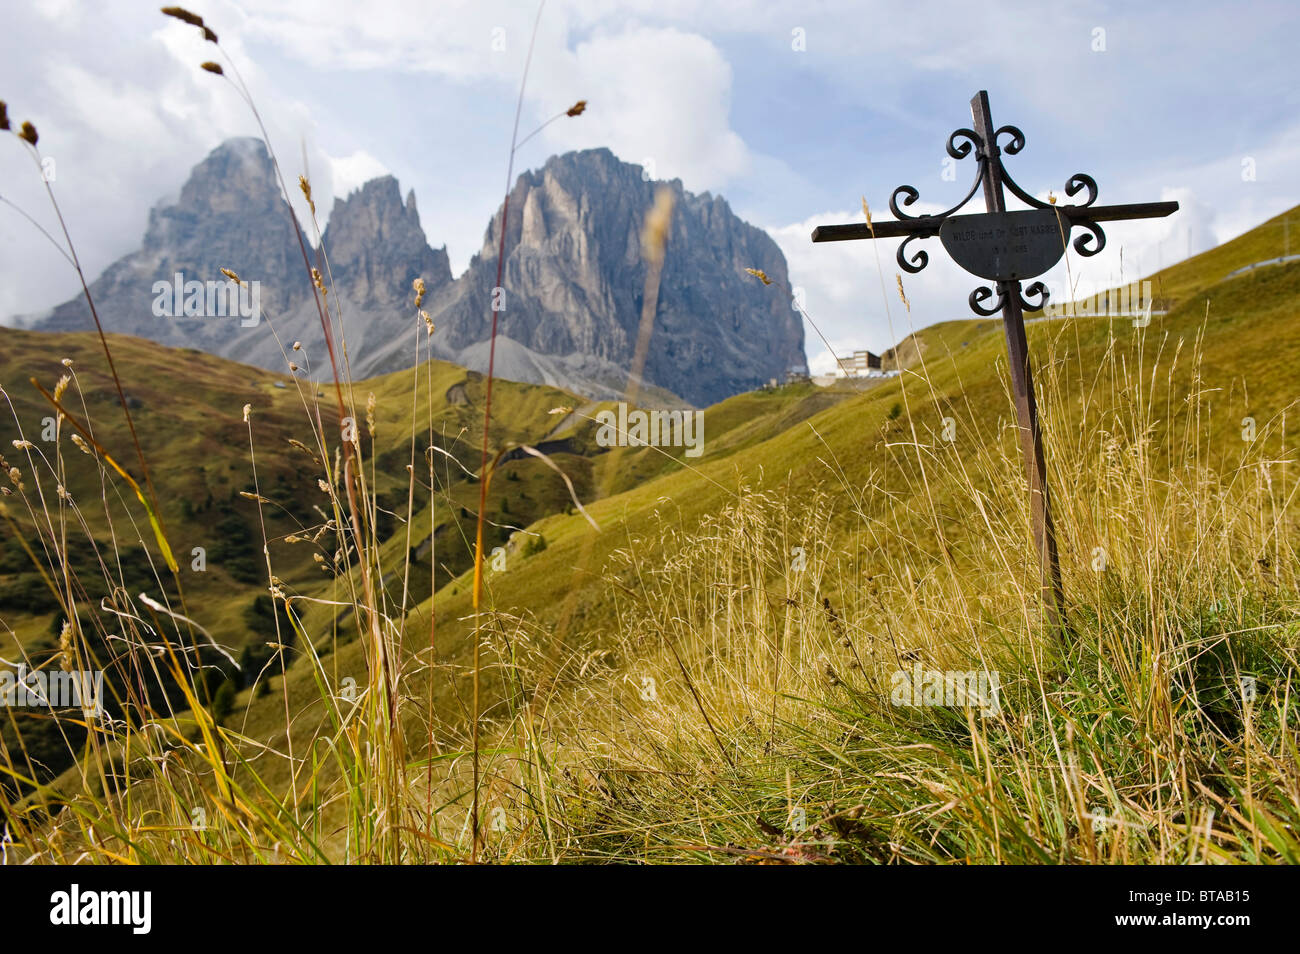 Cross as a memorial to people killed in a traffic accident on a mountain road, in front of Langkofel and Plattkofel - Stock Image